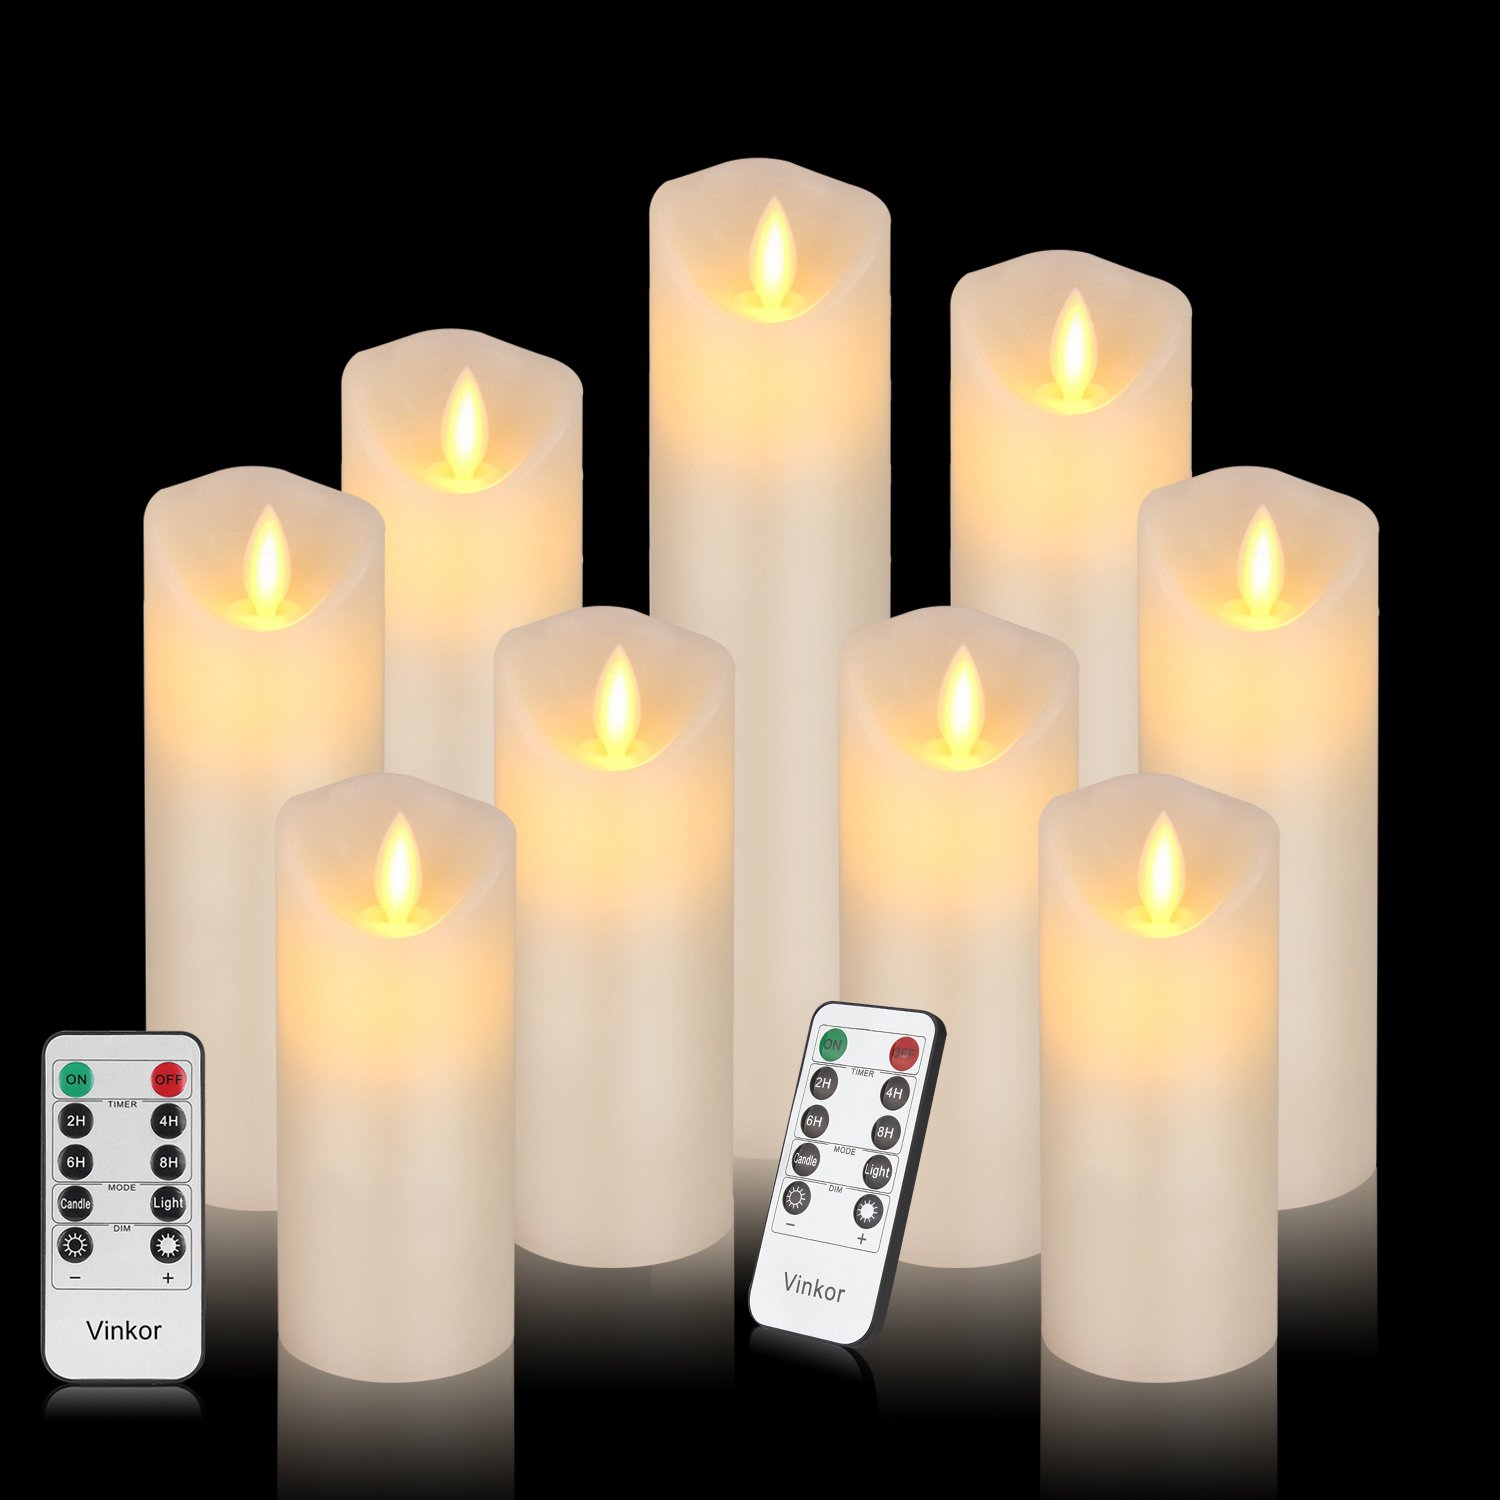 Vinkor Flameless Candles Led Candles Set of 9(H 4'' 5'' 6'' 7'' 8'' 9'' xD 2.2'') Ivory Real Wax Battery Operated Candles with Moving LED Flame & 10-Key Remote Control 2/4/6/8 Hours Timer